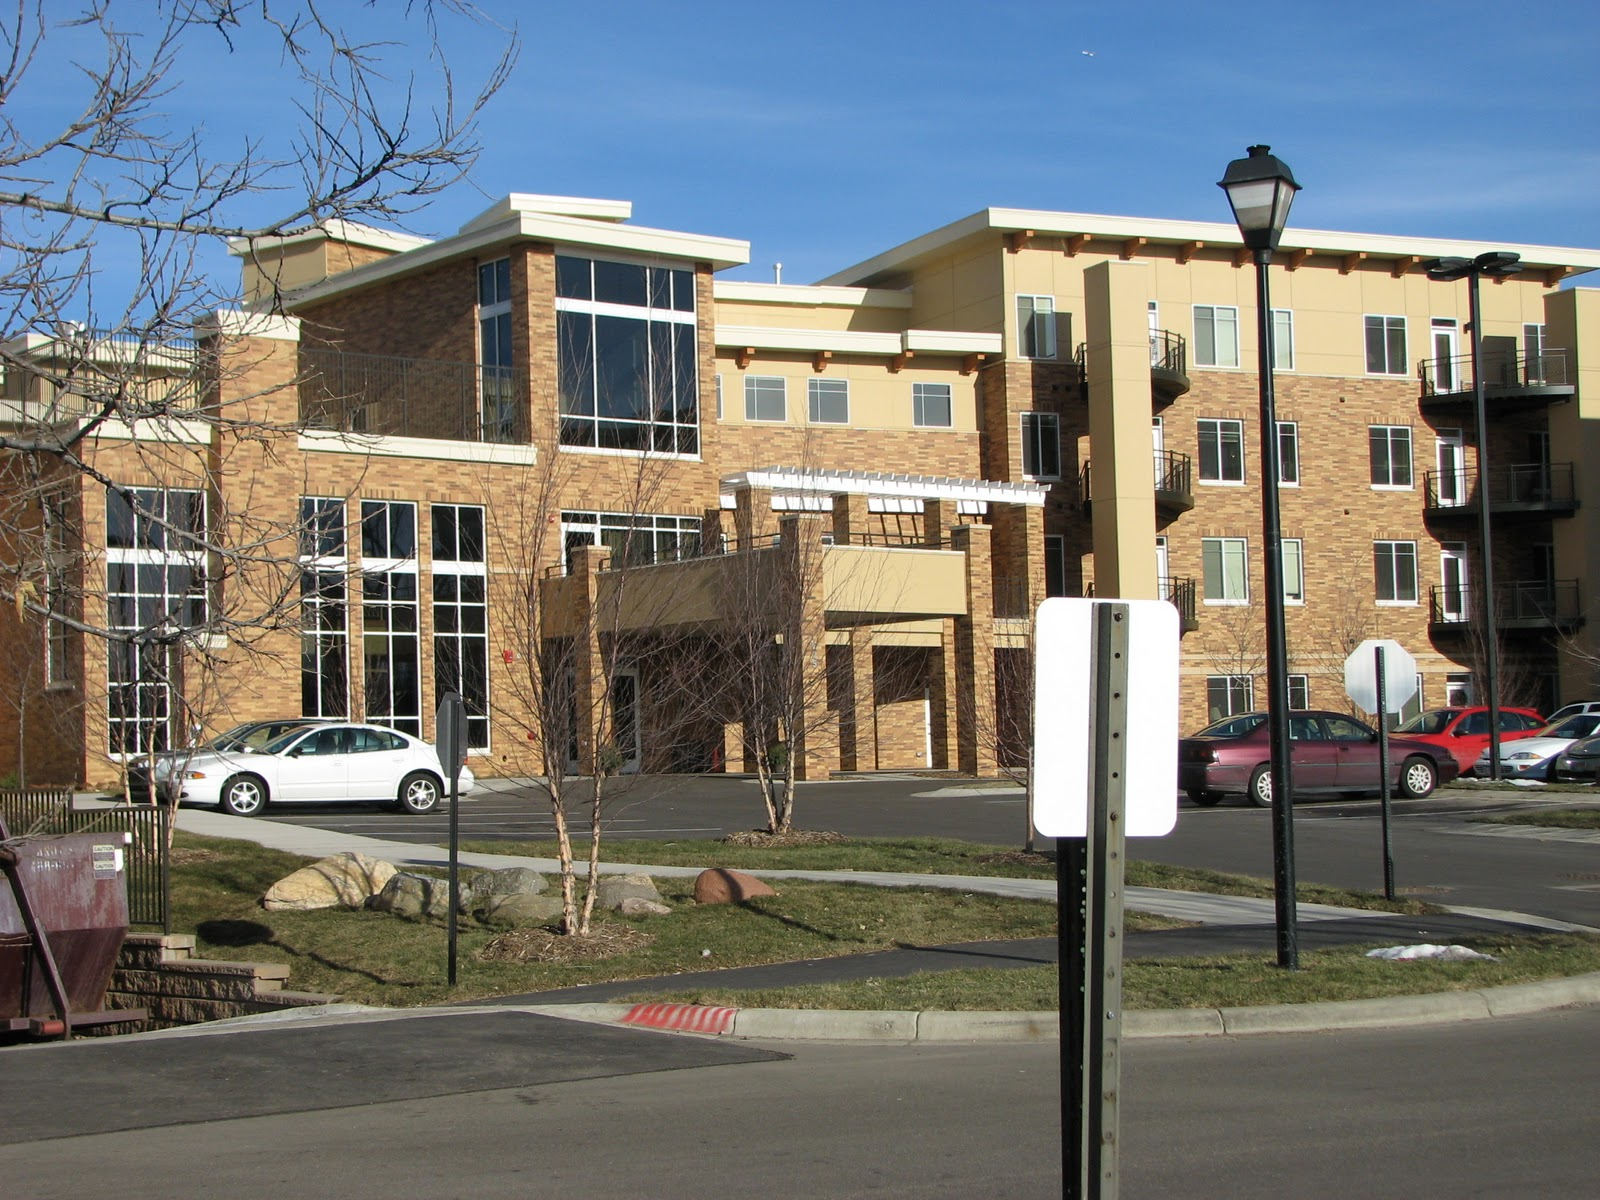 This Is The New Senior Living Complex On The Edge Of St. Kateu0027s Campus  Which Includes Several Configurations Of Independent Living Apartments And  Studios, ...